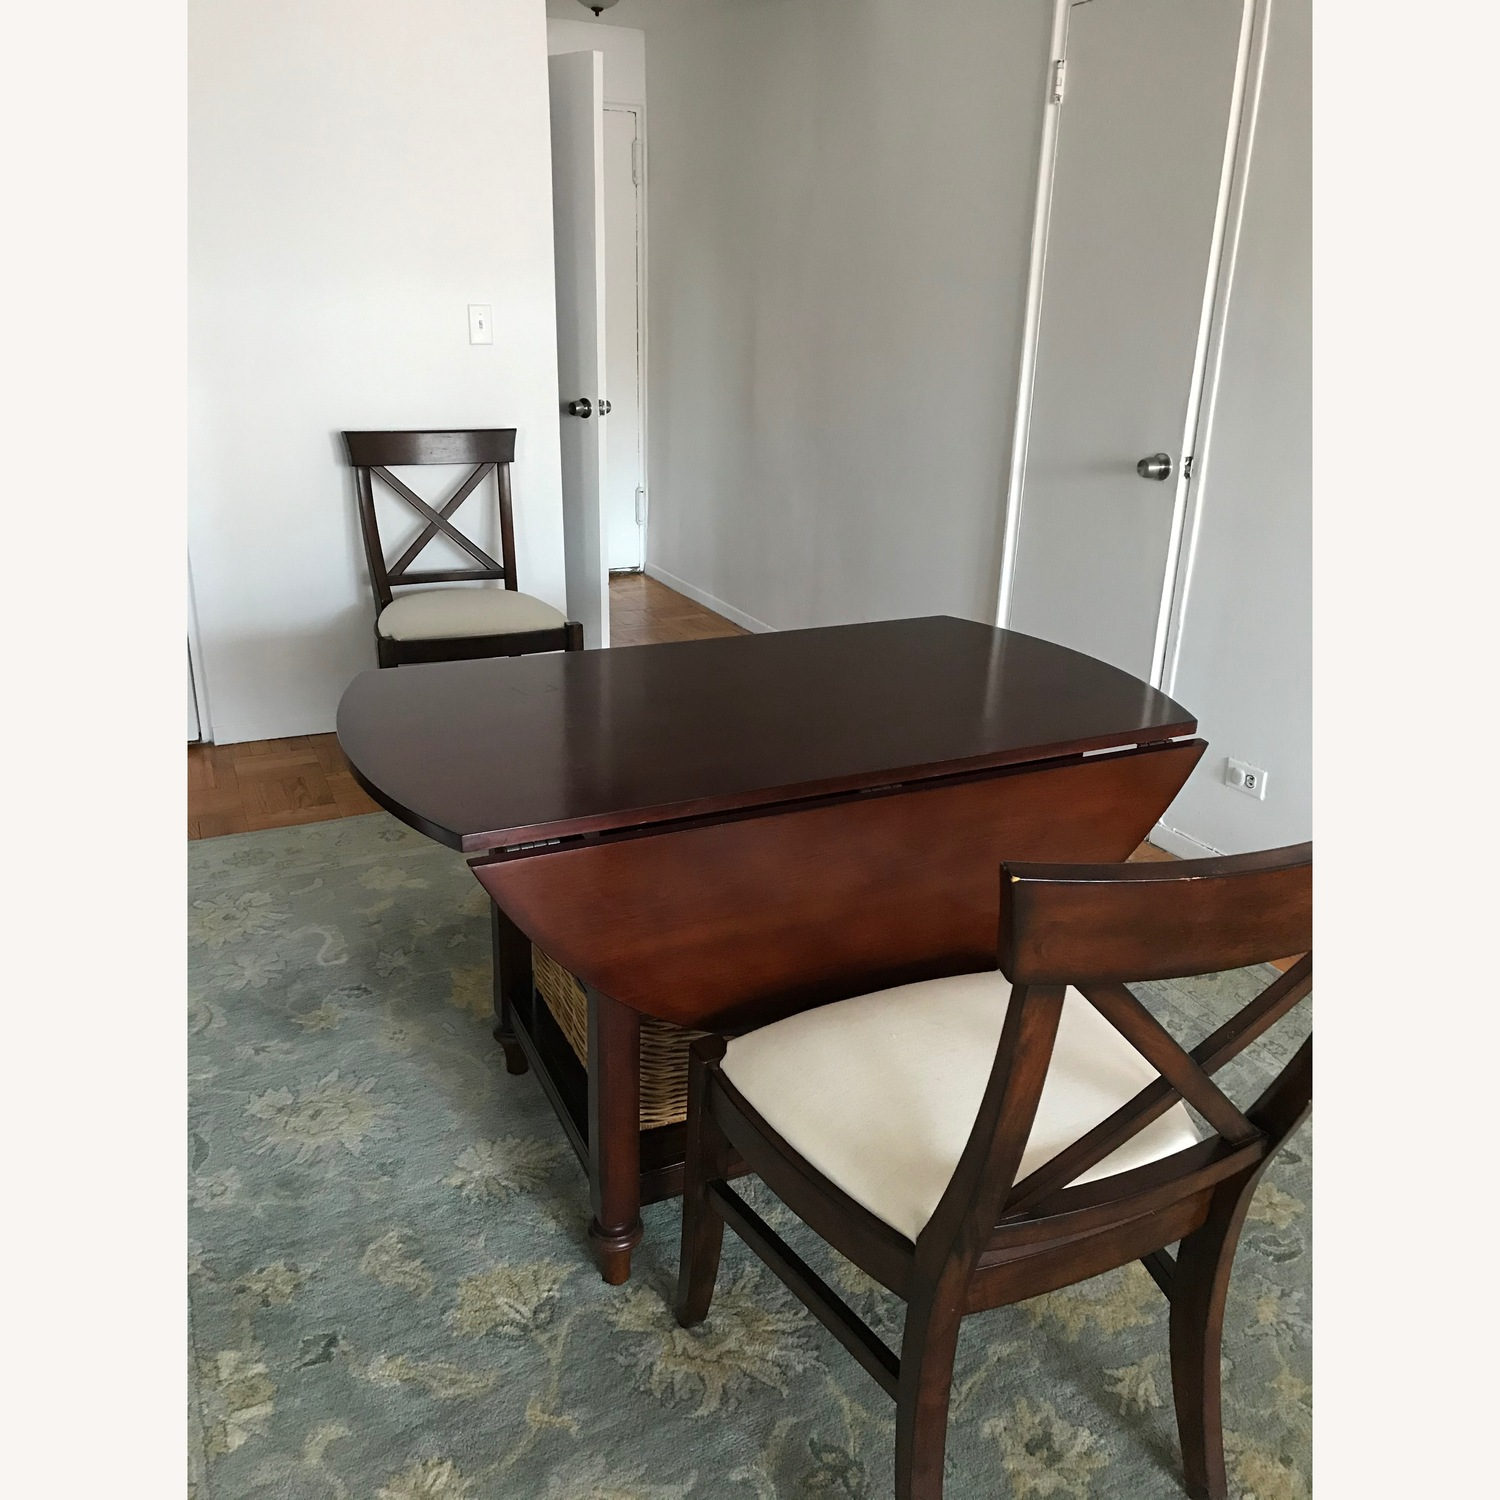 Pottery Barn Drop-Leaf Kitchen Table